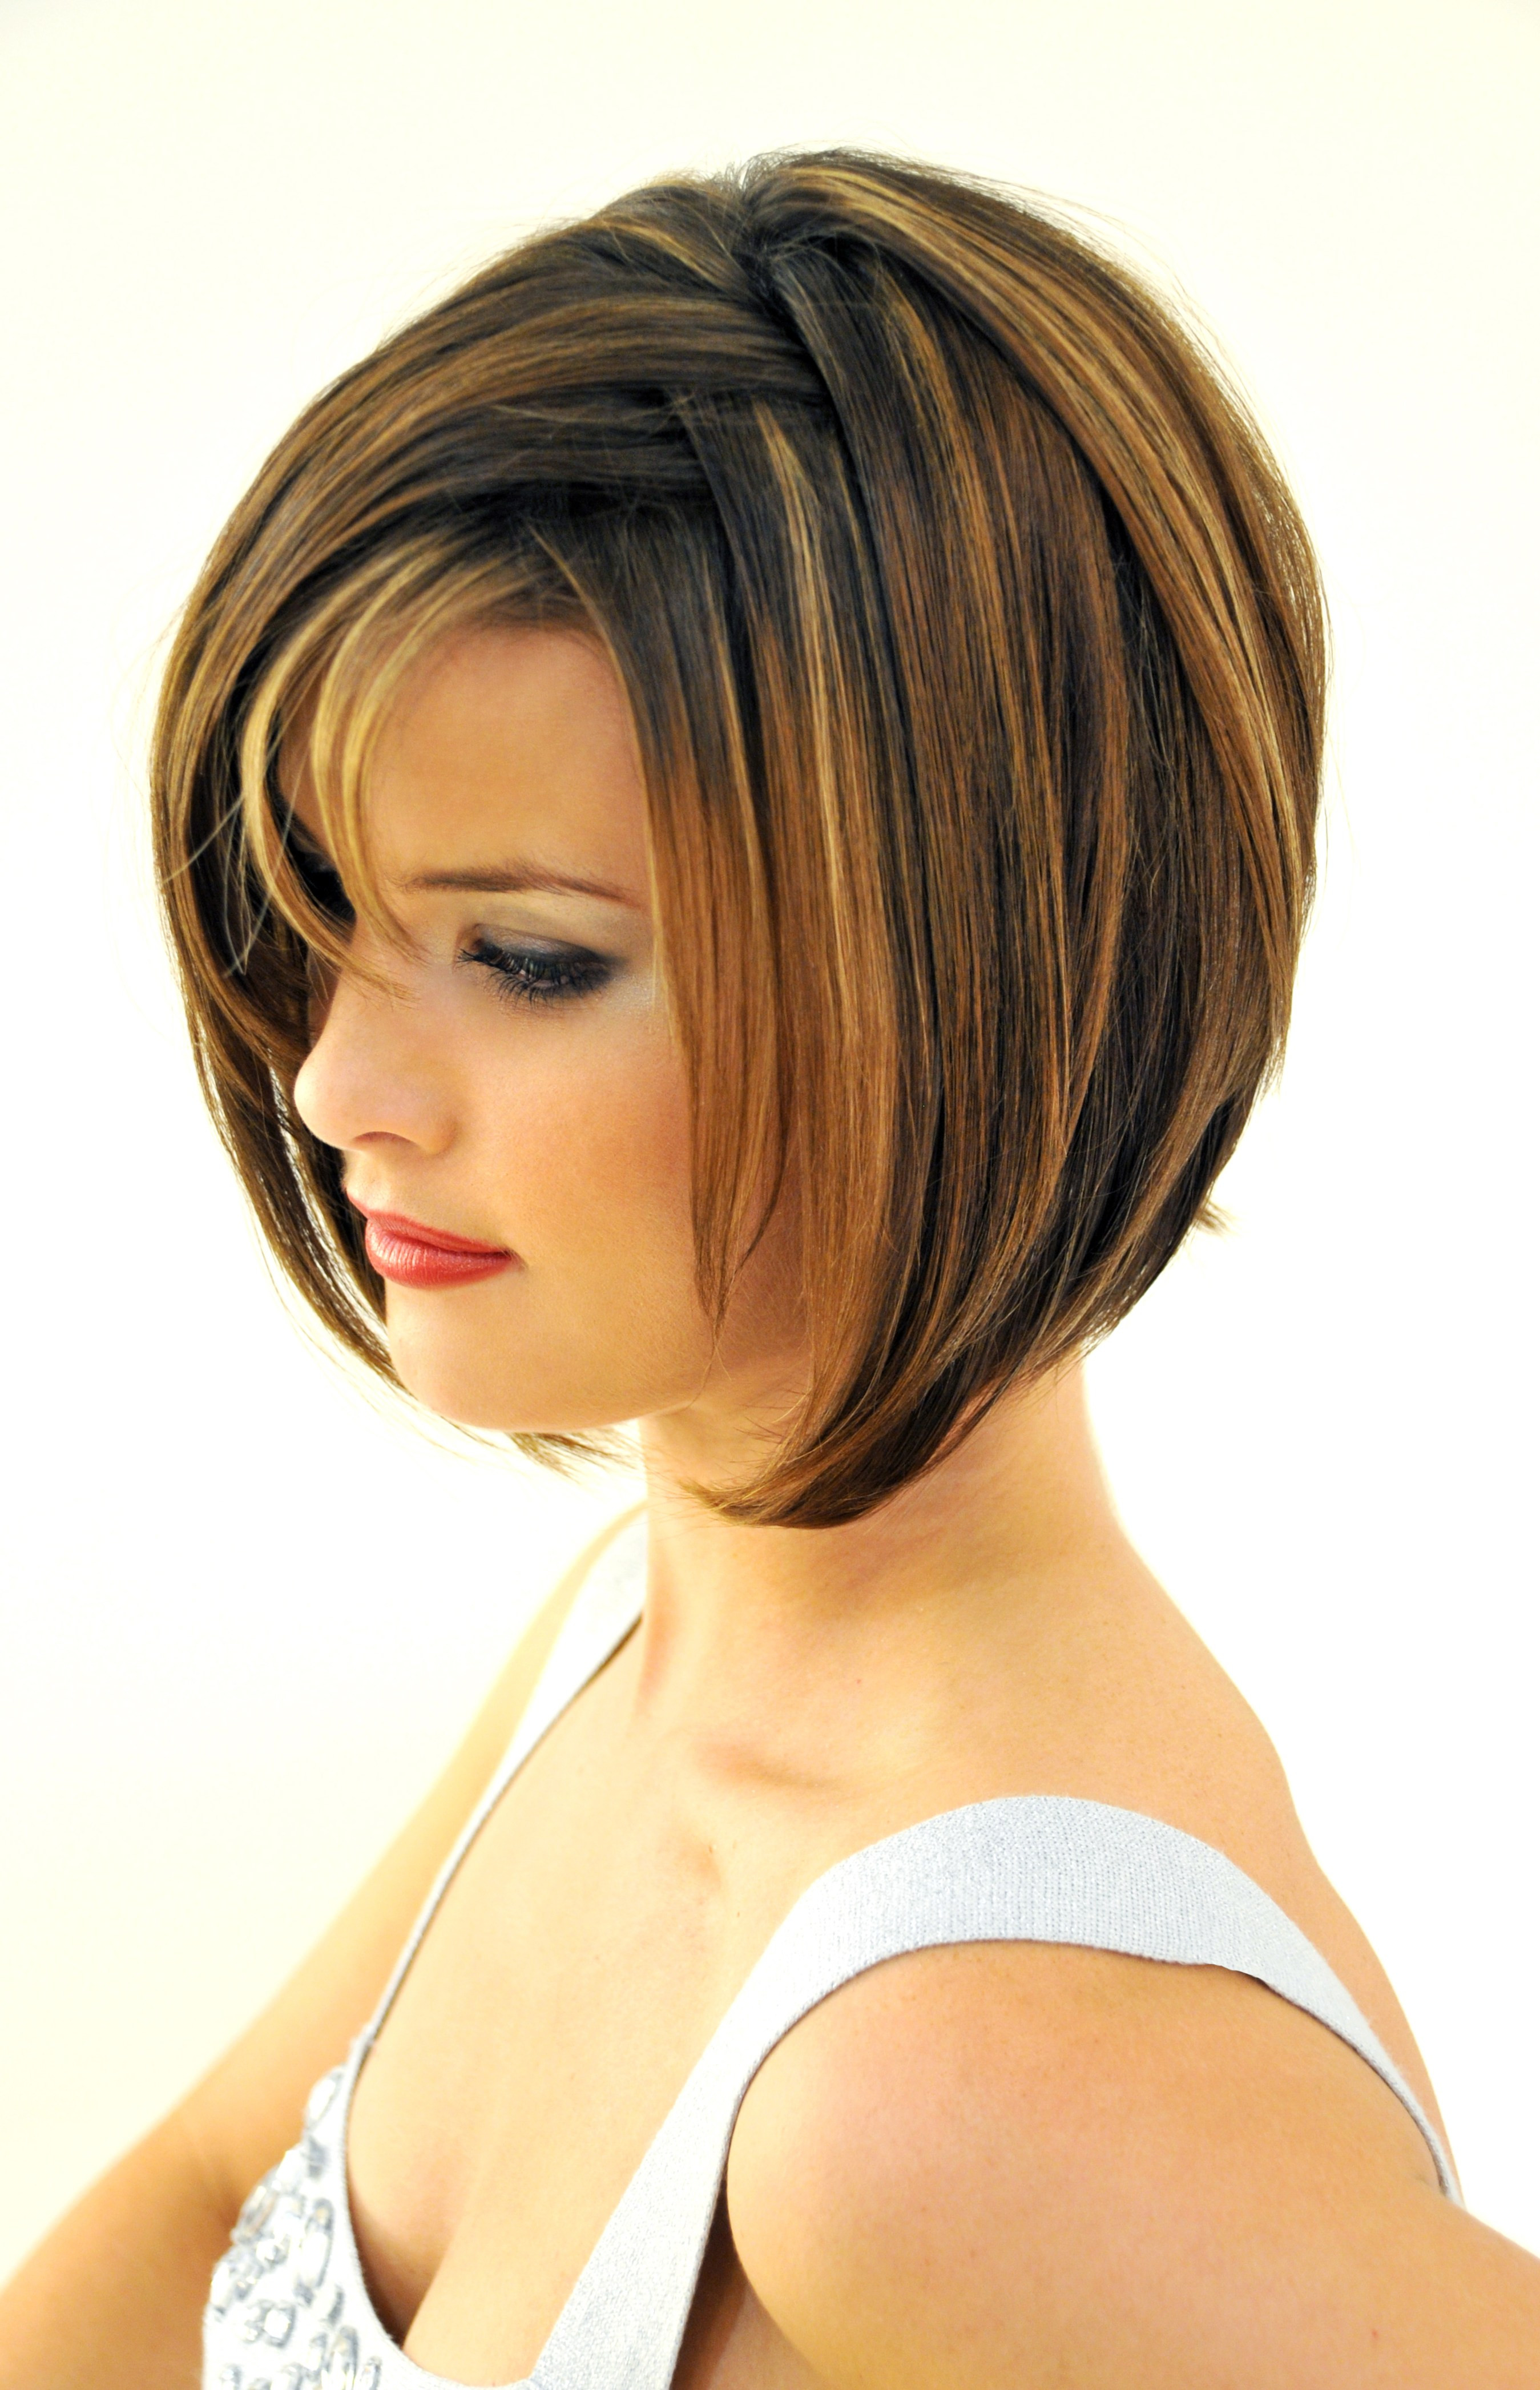 Best ideas about A Bob Hairstyle . Save or Pin Short Bob Hairstyles with Bangs 4 Perfect Ideas for You Now.